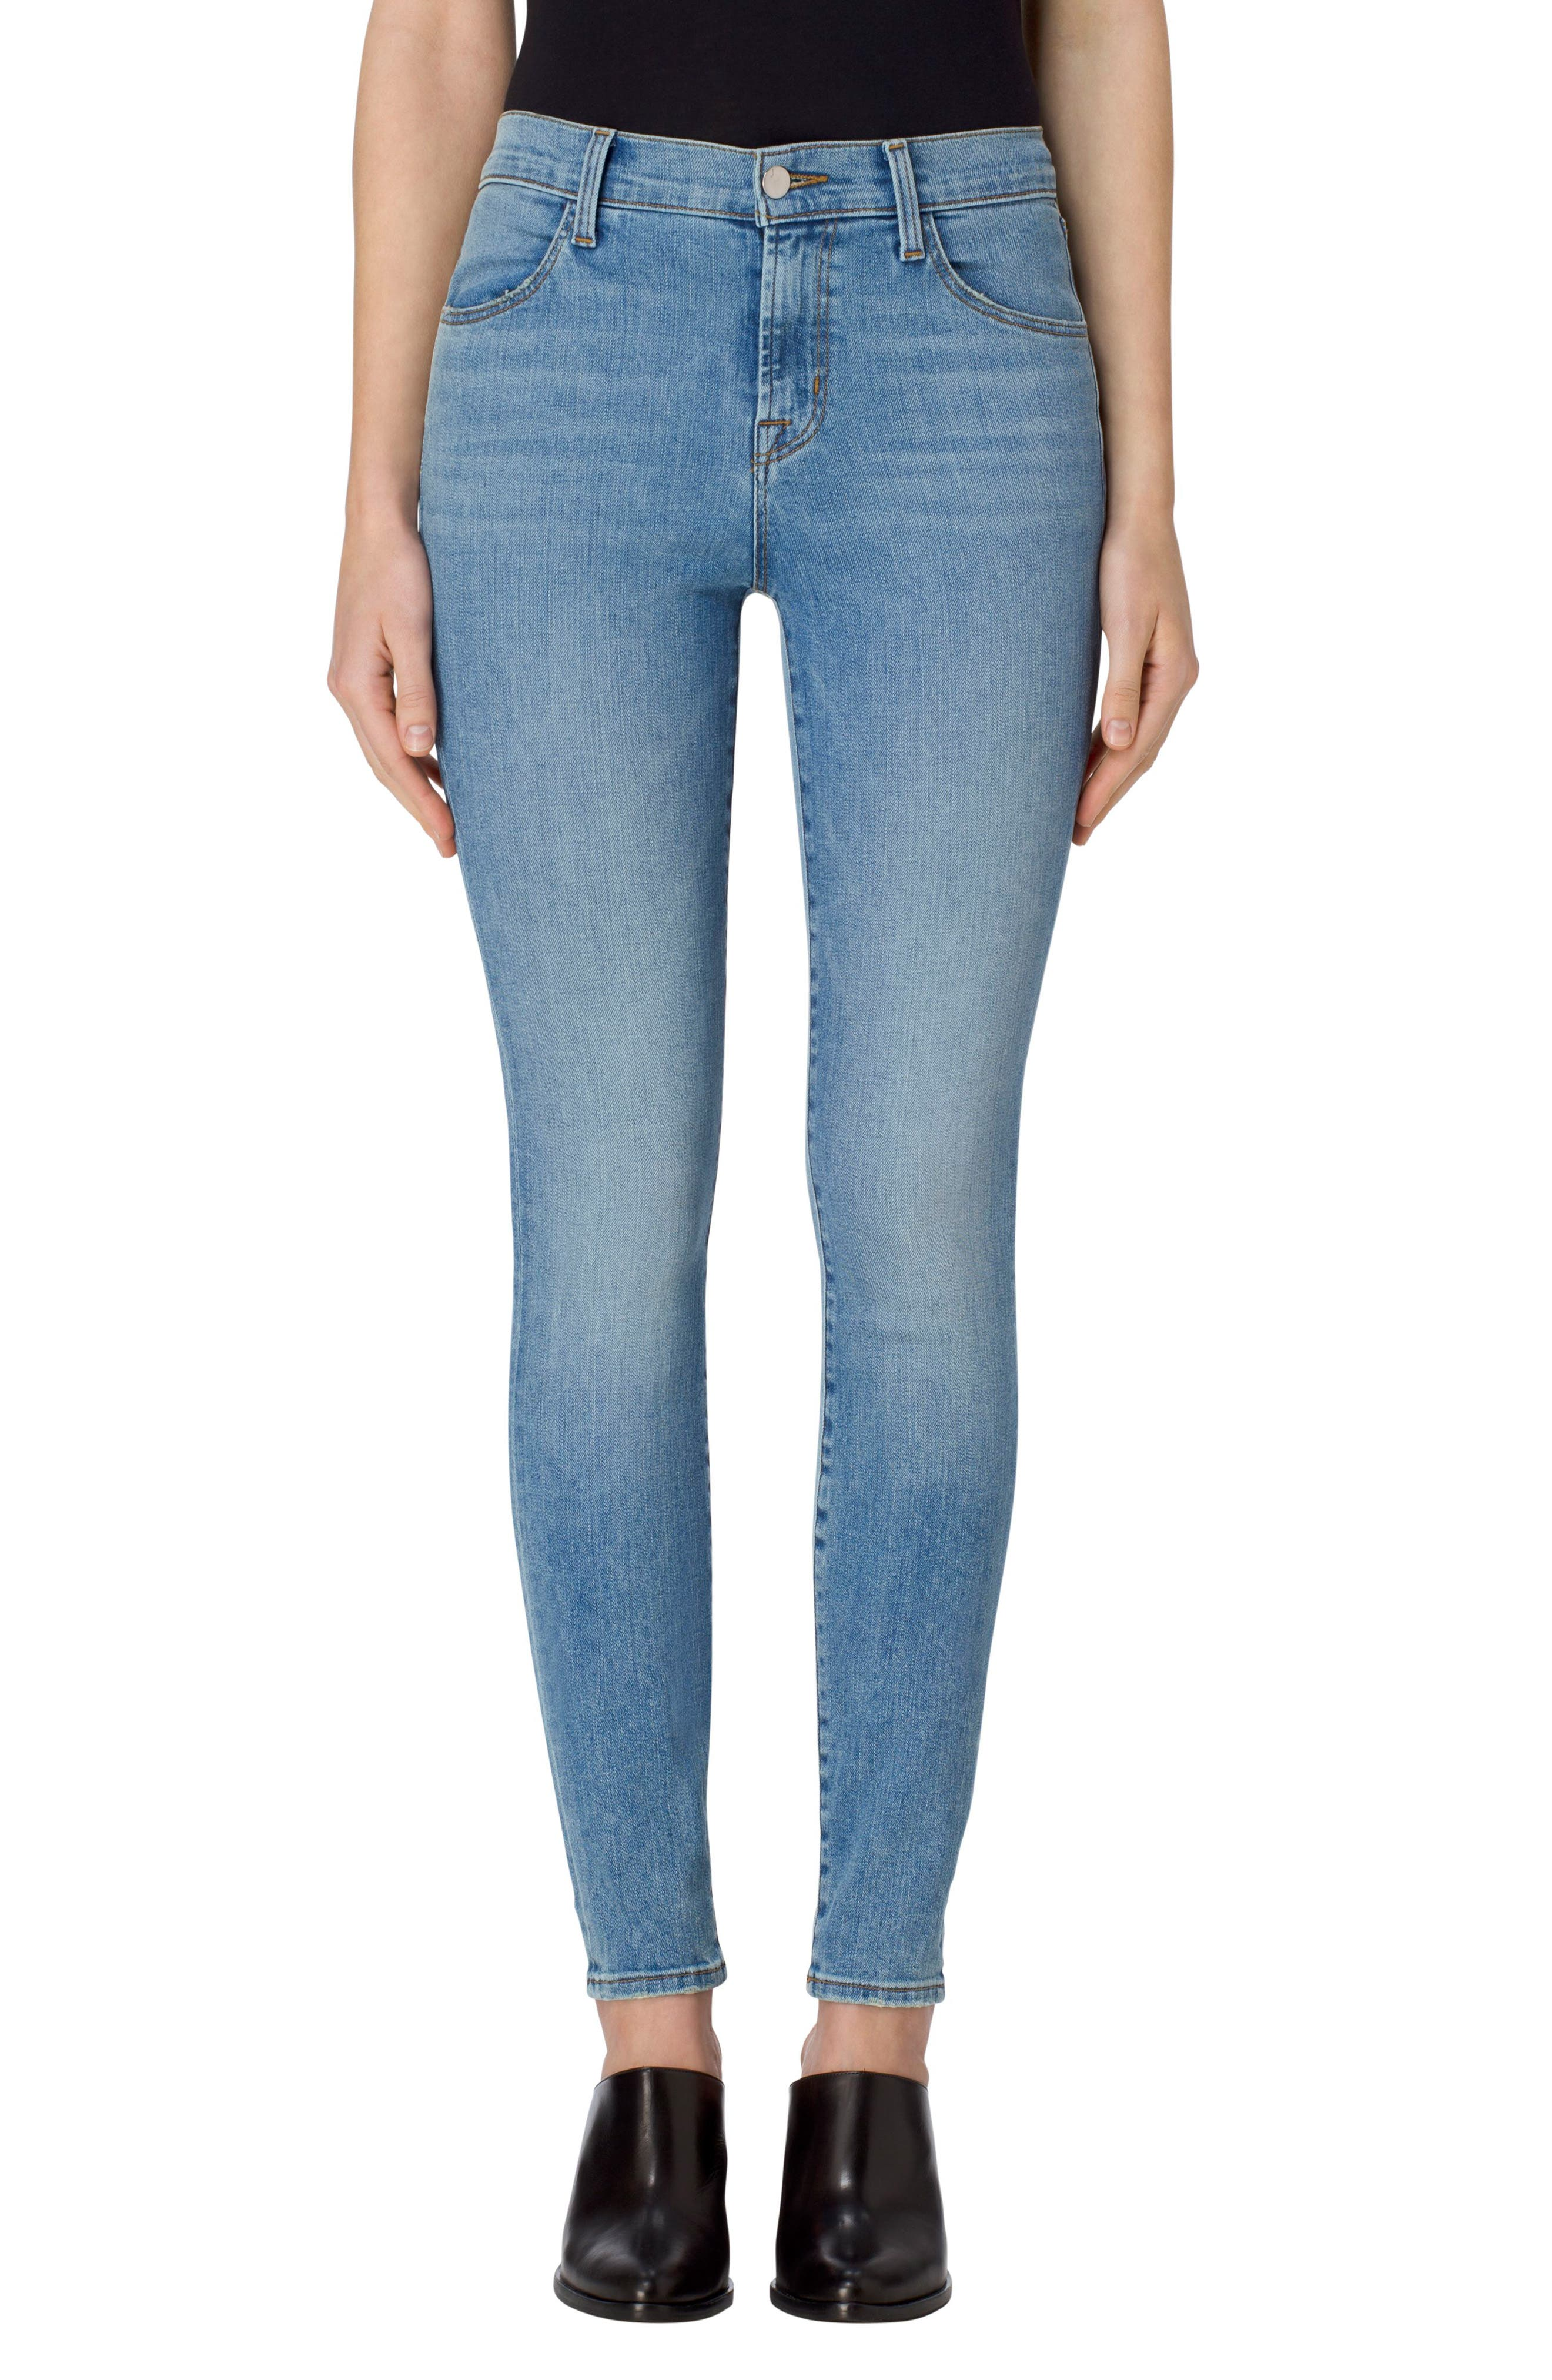 Alternate Image 1 Selected - J Brand Maria High Waist Skinny Jeans